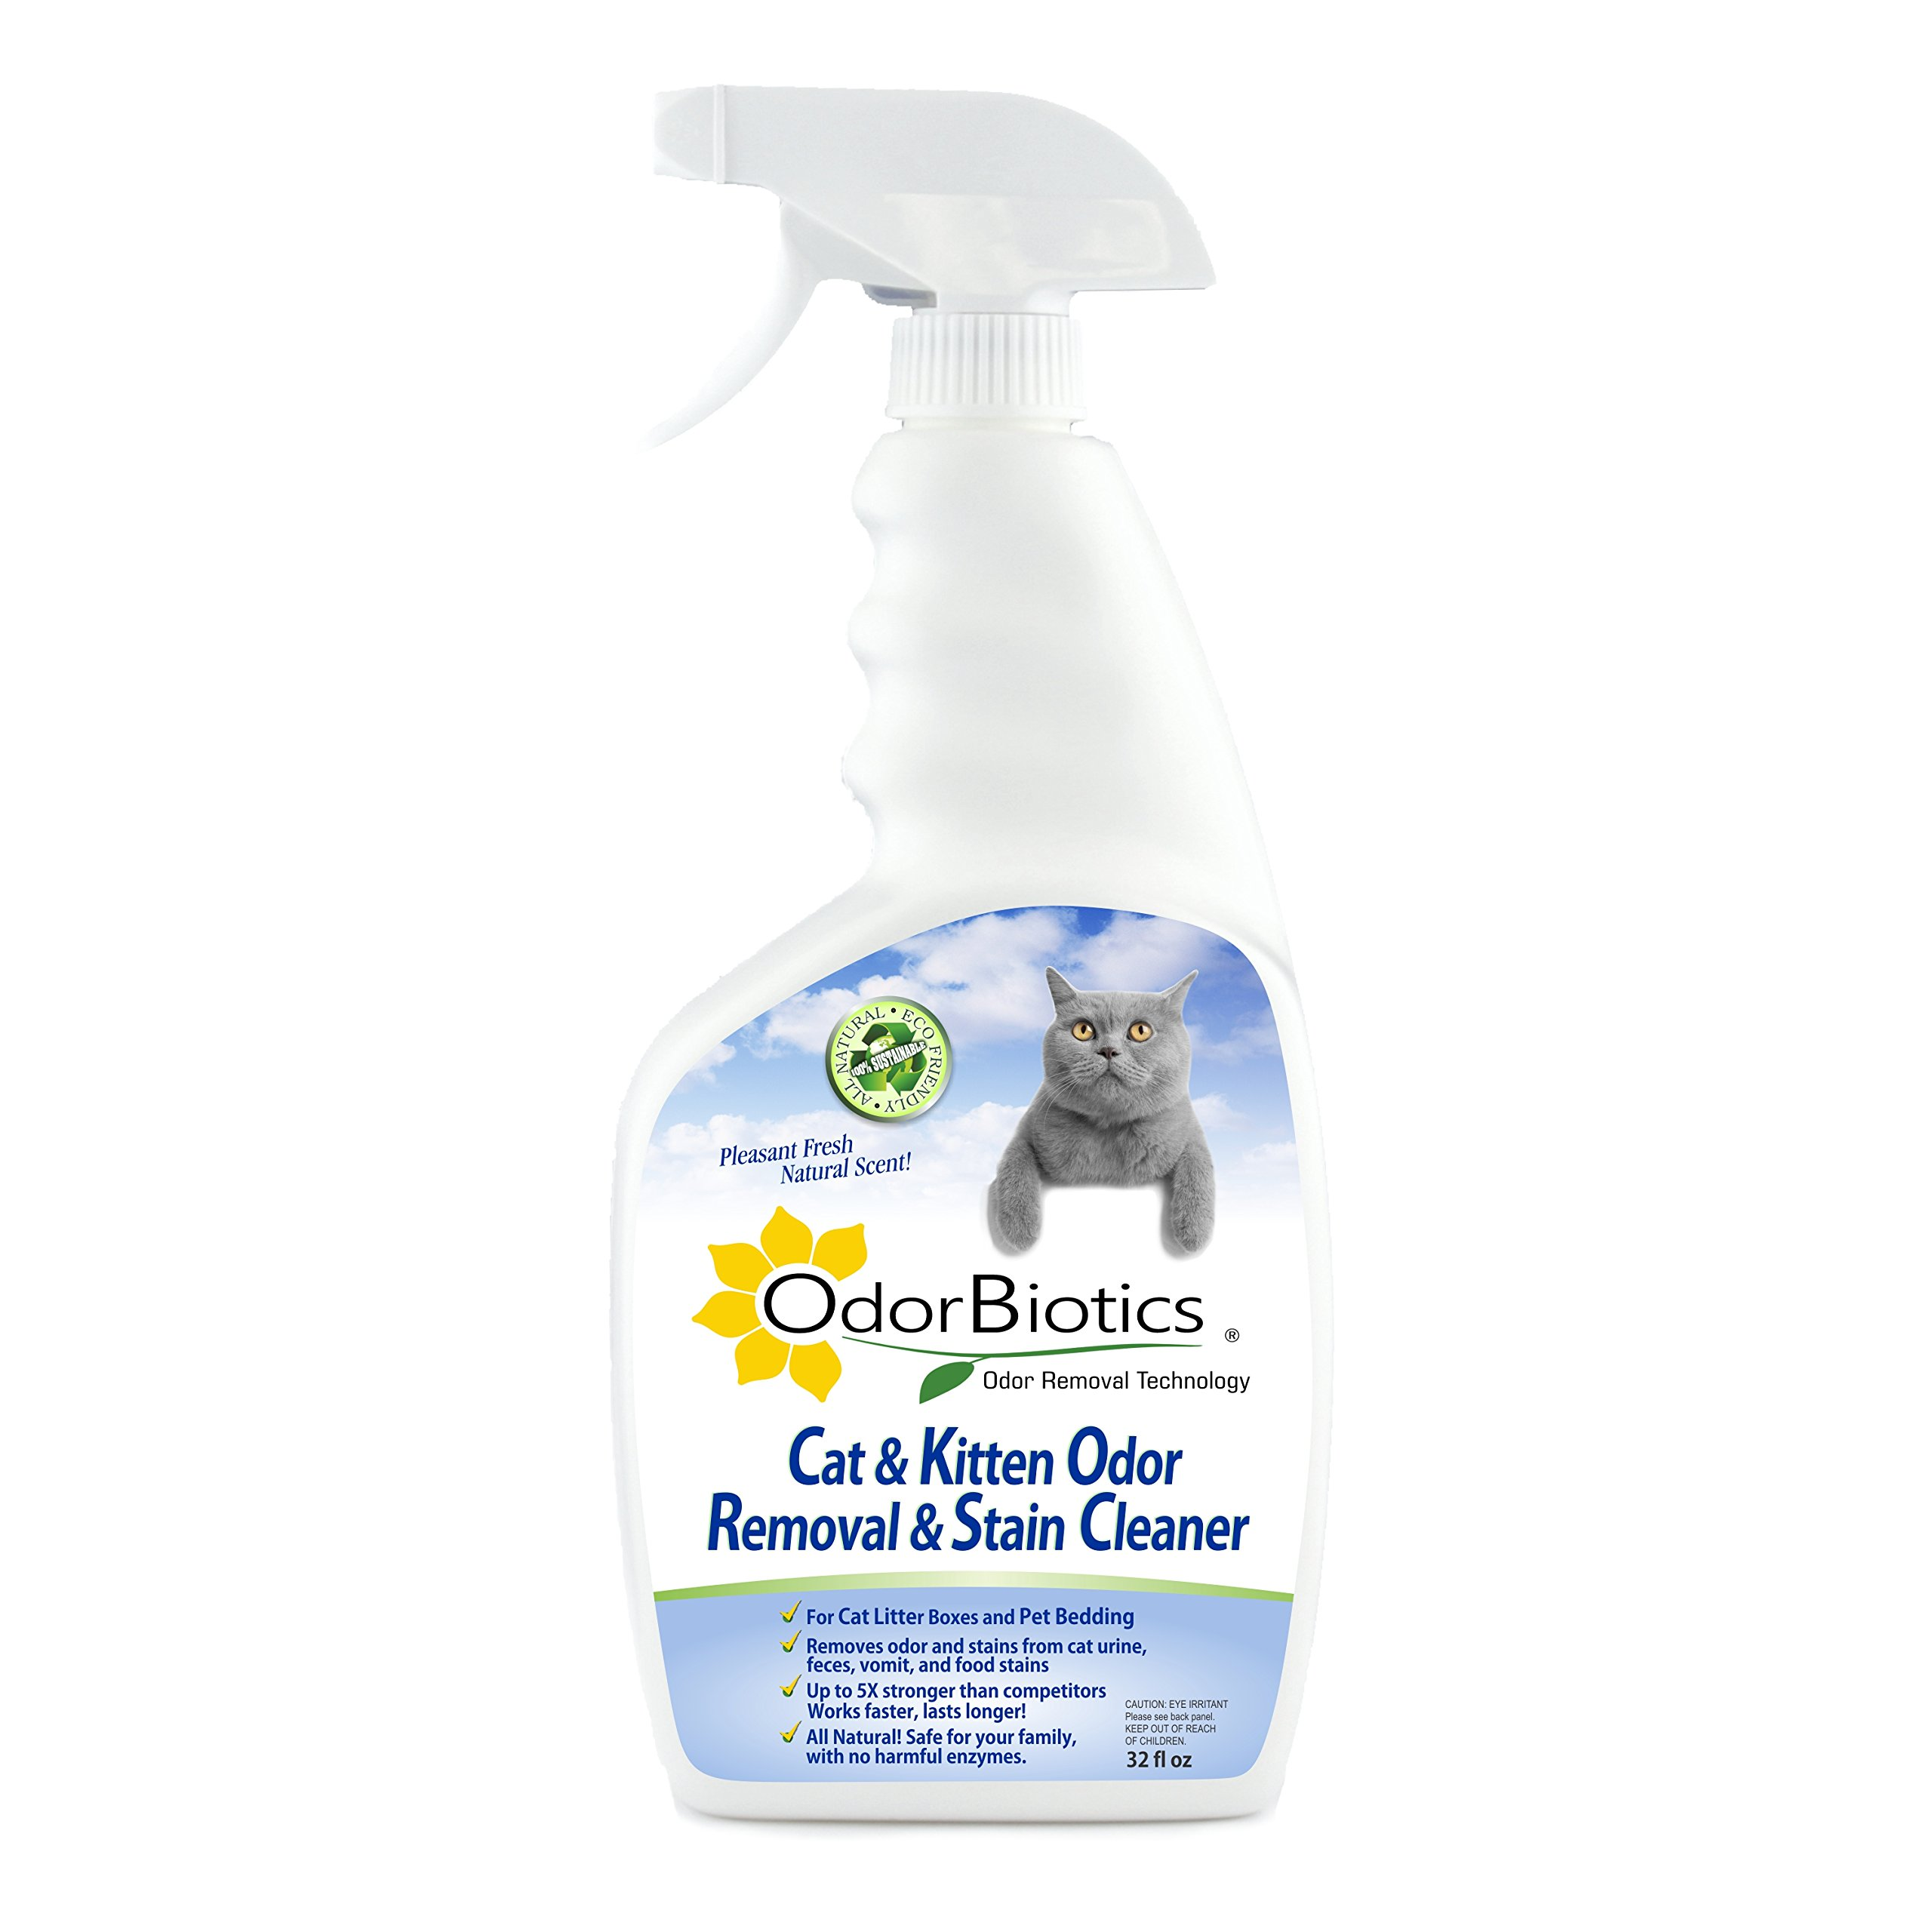 OdorBiotics Pet Stain-Odor Eliminator for Cat Litter Boxes, Small Animal Cages for Chinchilla, Ferret, Guinea Pig Bedding, Hamster and Bunny Rabbit Houses, Carpet Fabric Stains, 32 oz Spray Bottle by OdorBiotics (Image #1)